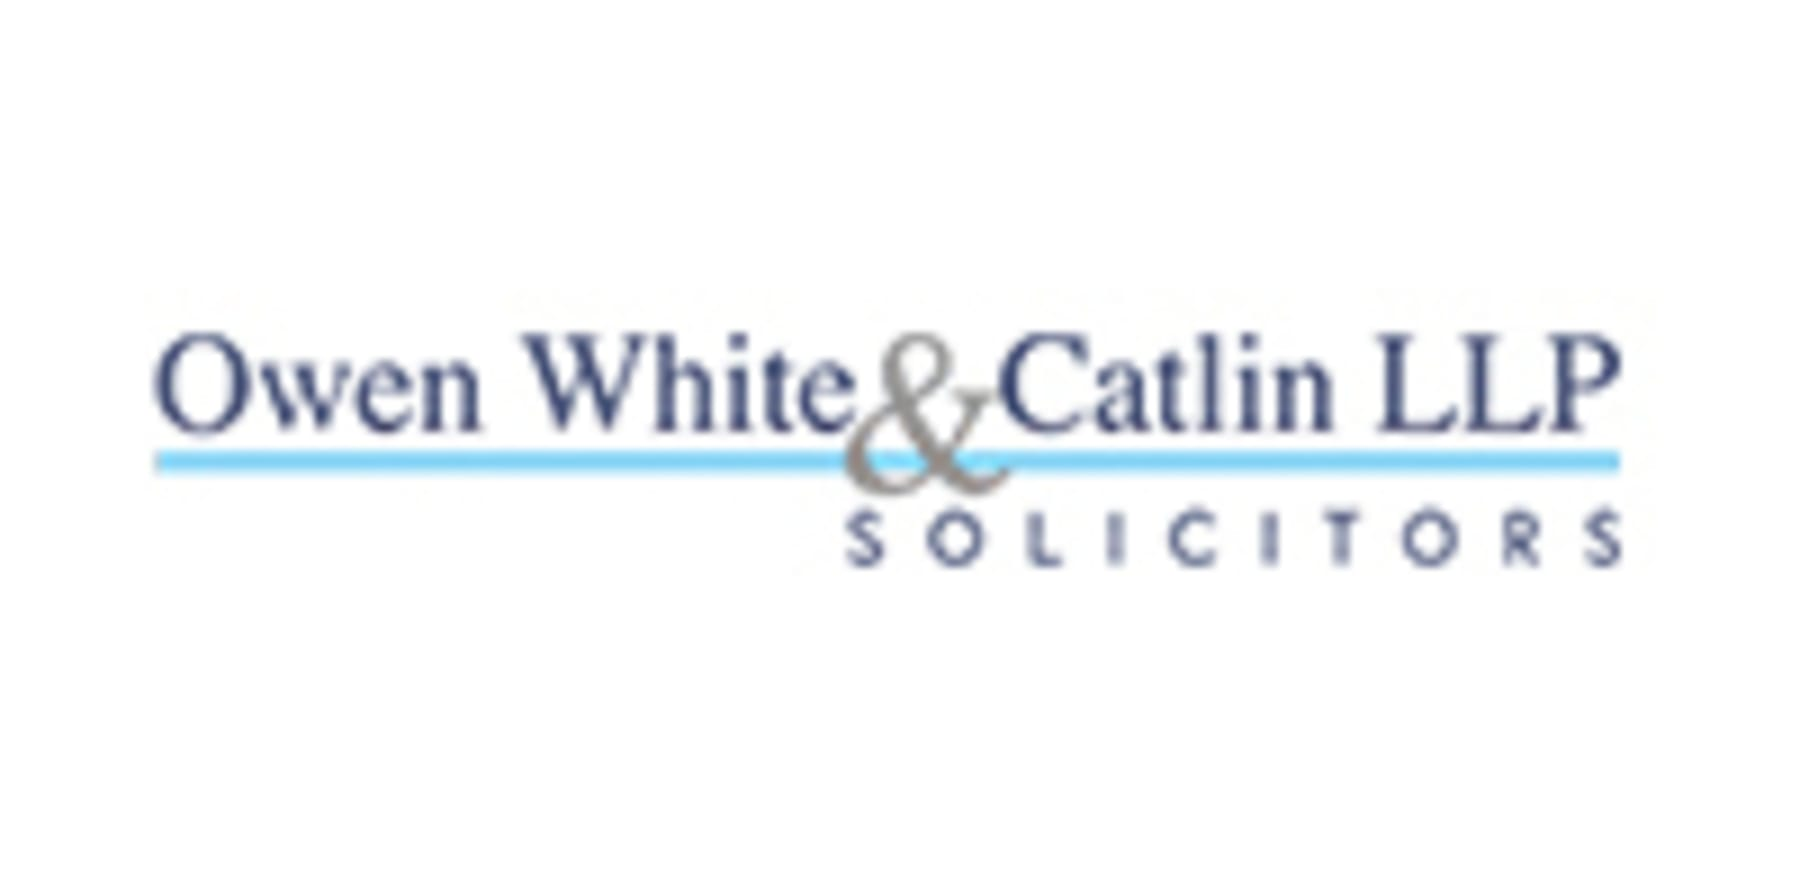 Owen White & Catlin Solicitors